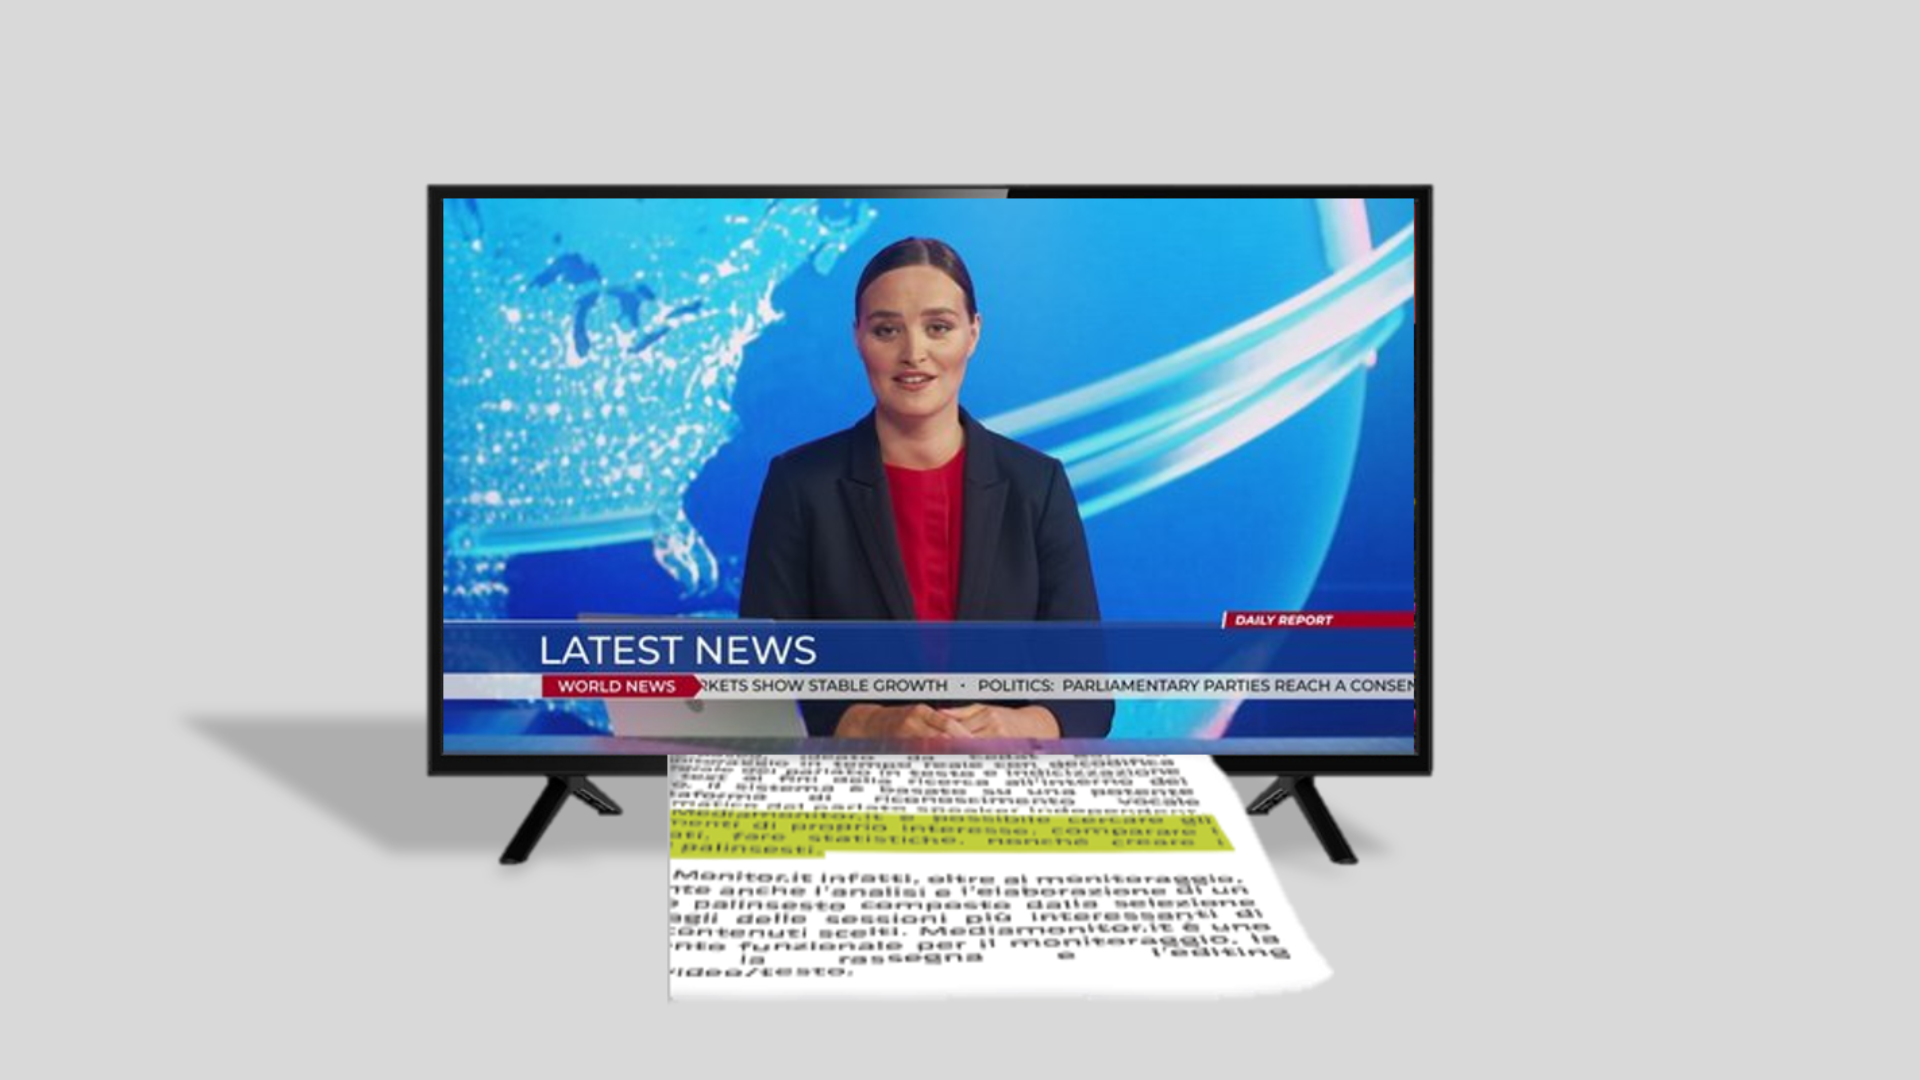 Image showing a network news anchor